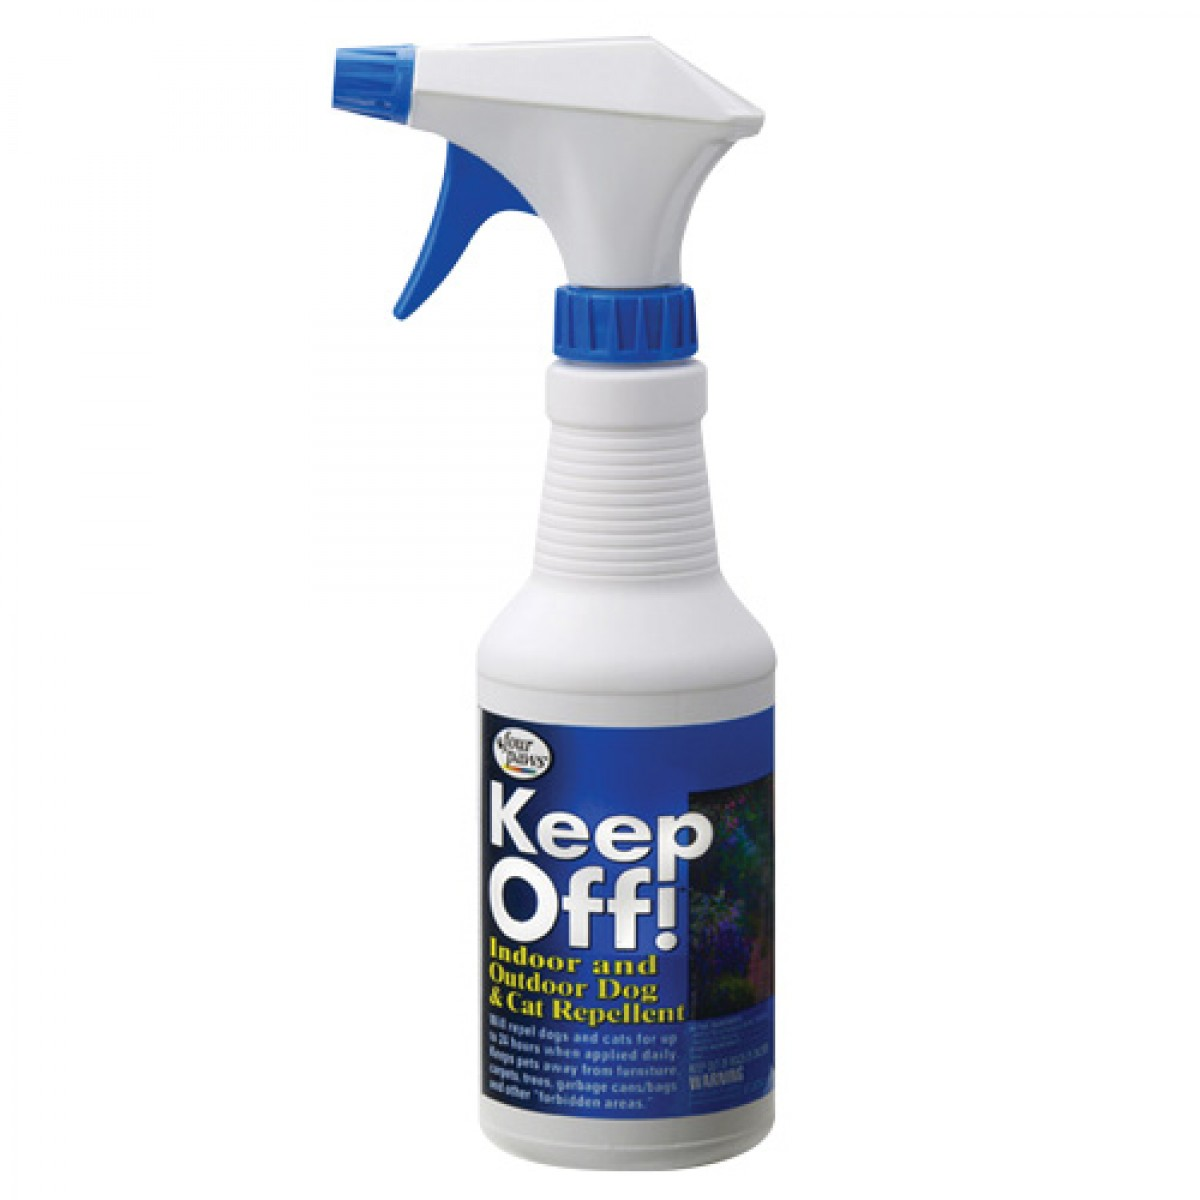 Spray To Keep Cats Off Bed